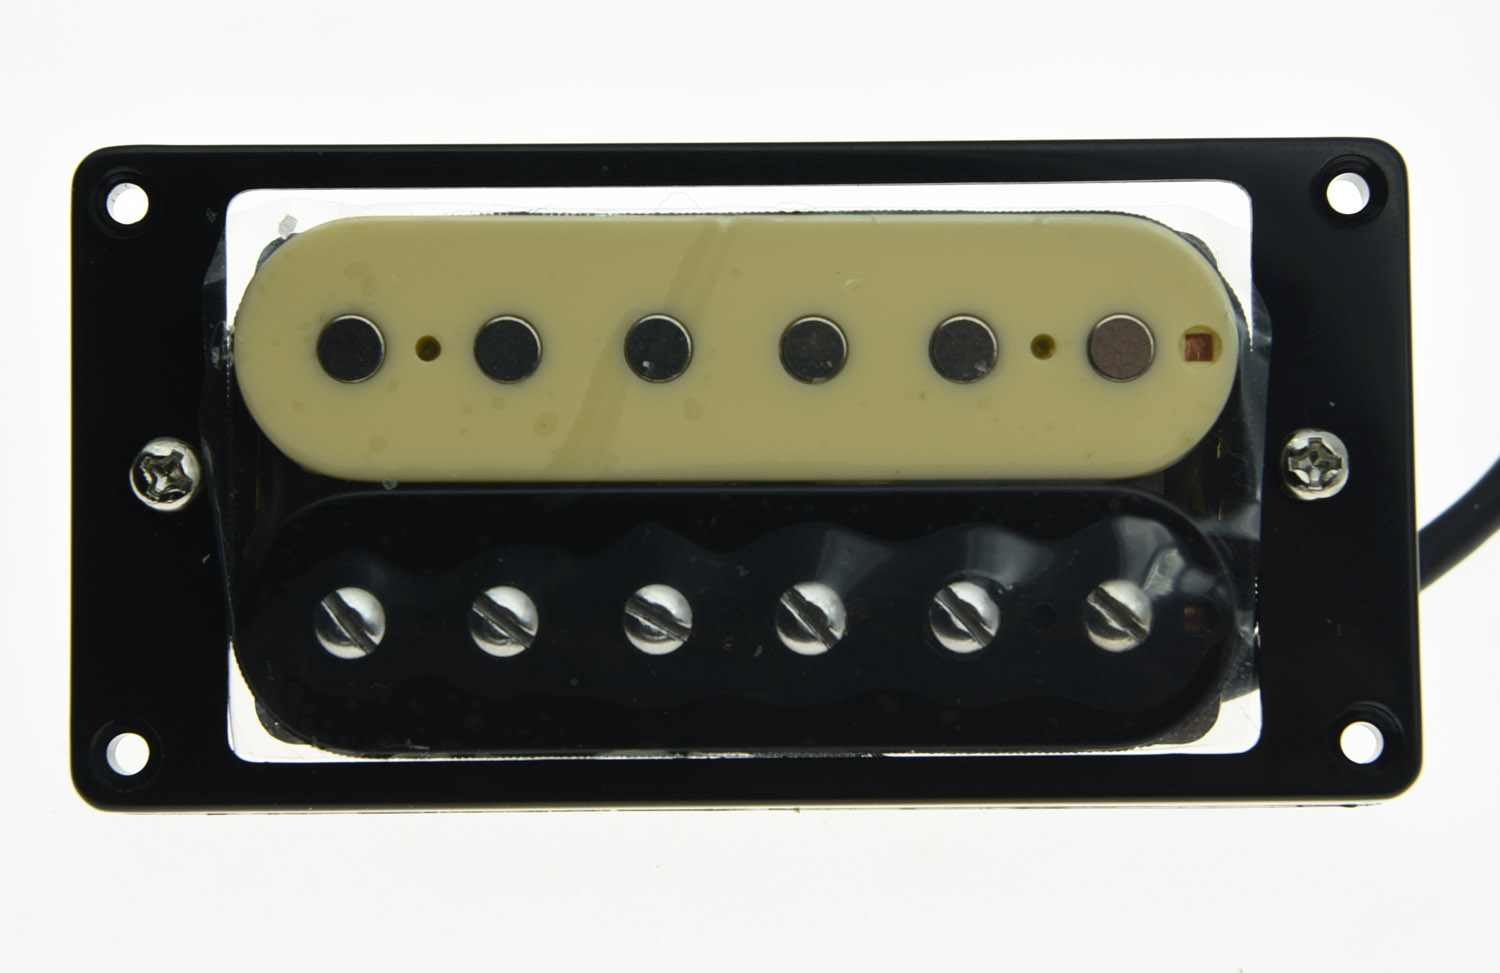 Alnico V Guitar Humbucker Bridge Pickup 50's Vintage Sound Pickups Zebra Style belcat electric guitar pickups humbucker double coil pickup guitar parts accessories bridge neck set alnico 5 gold